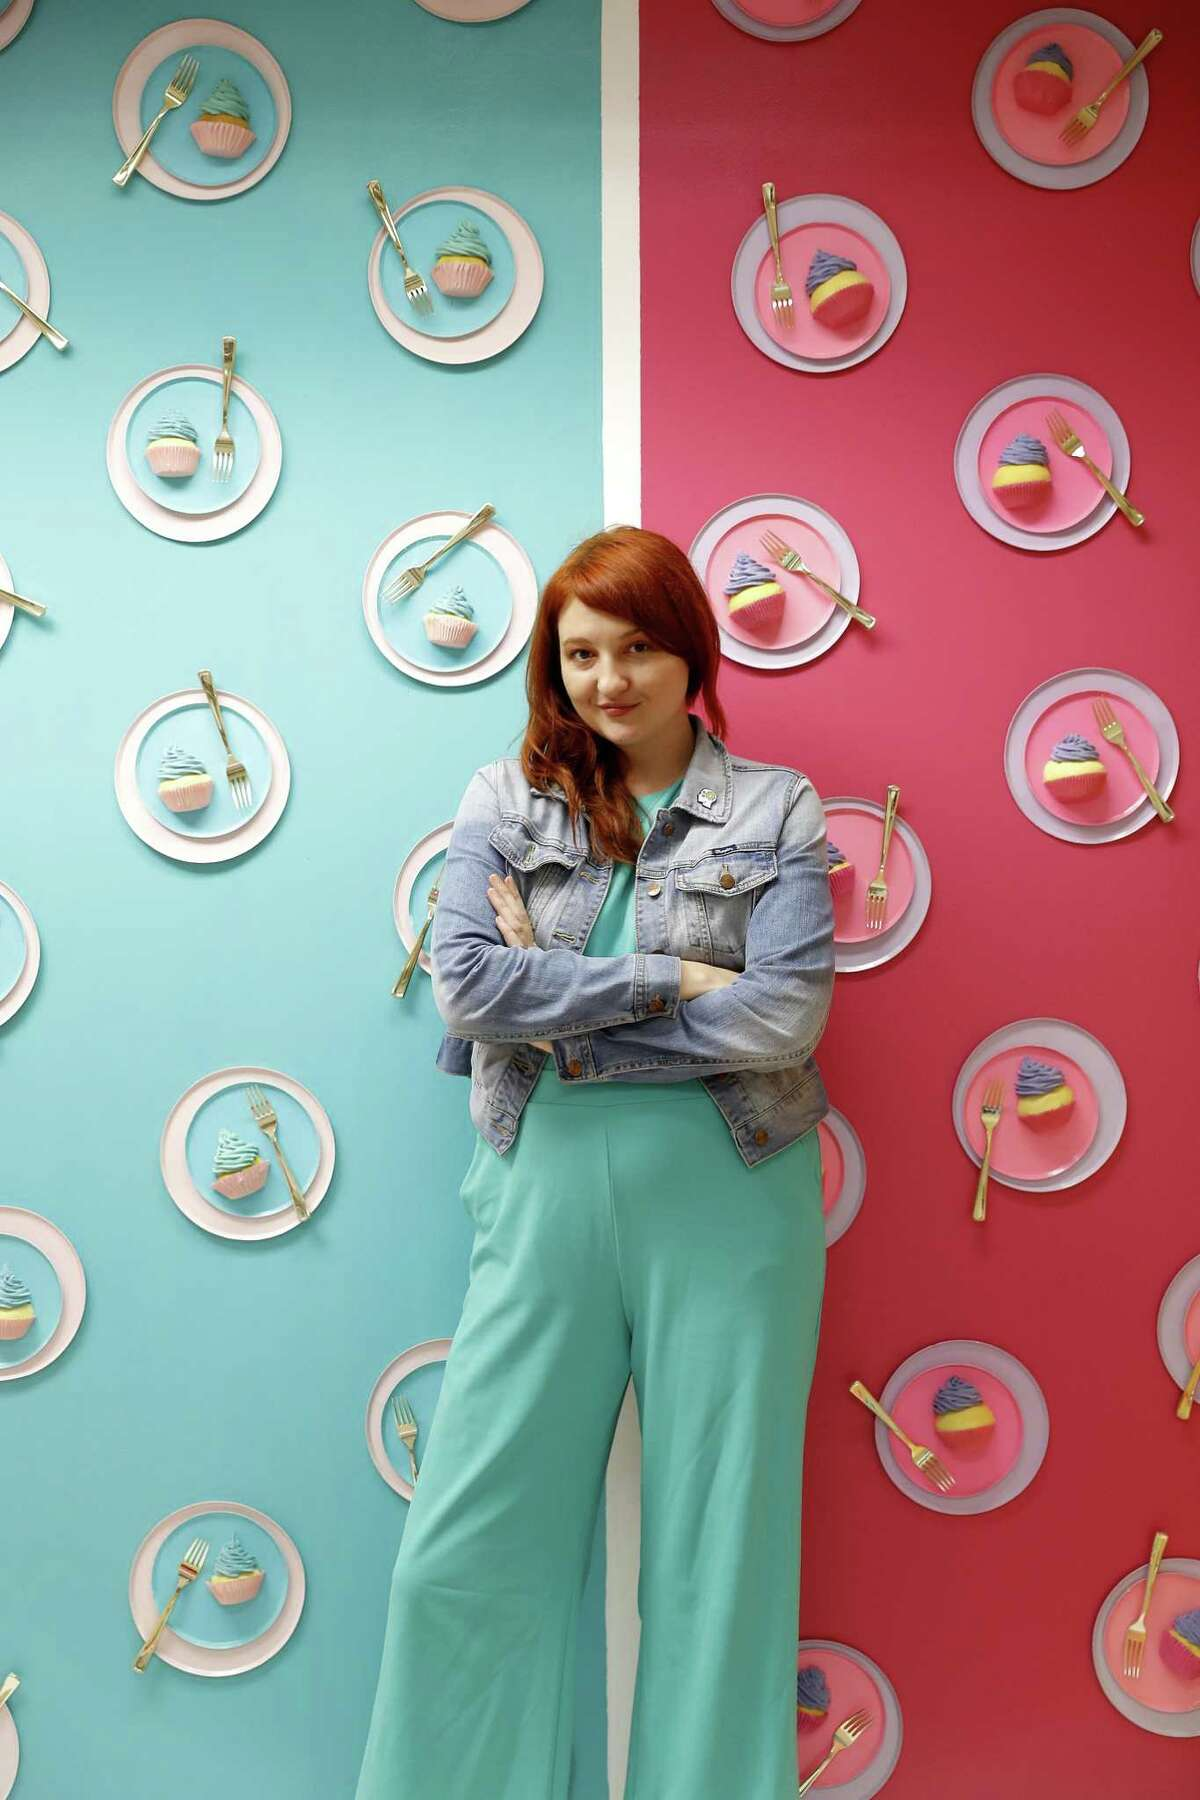 """FOMO Factory founder Rachel Youens in the """"birthday room"""" in the FOMO Factory under construction in the Galleria mall, in Houston , Thursday, May 2, 2019. FOMO Factory was formerly in Austin, and is set to open in Houston in June. Malls and department stores are incorporating Instagrammable, experiential retail to draw customers in the age of Amazon."""